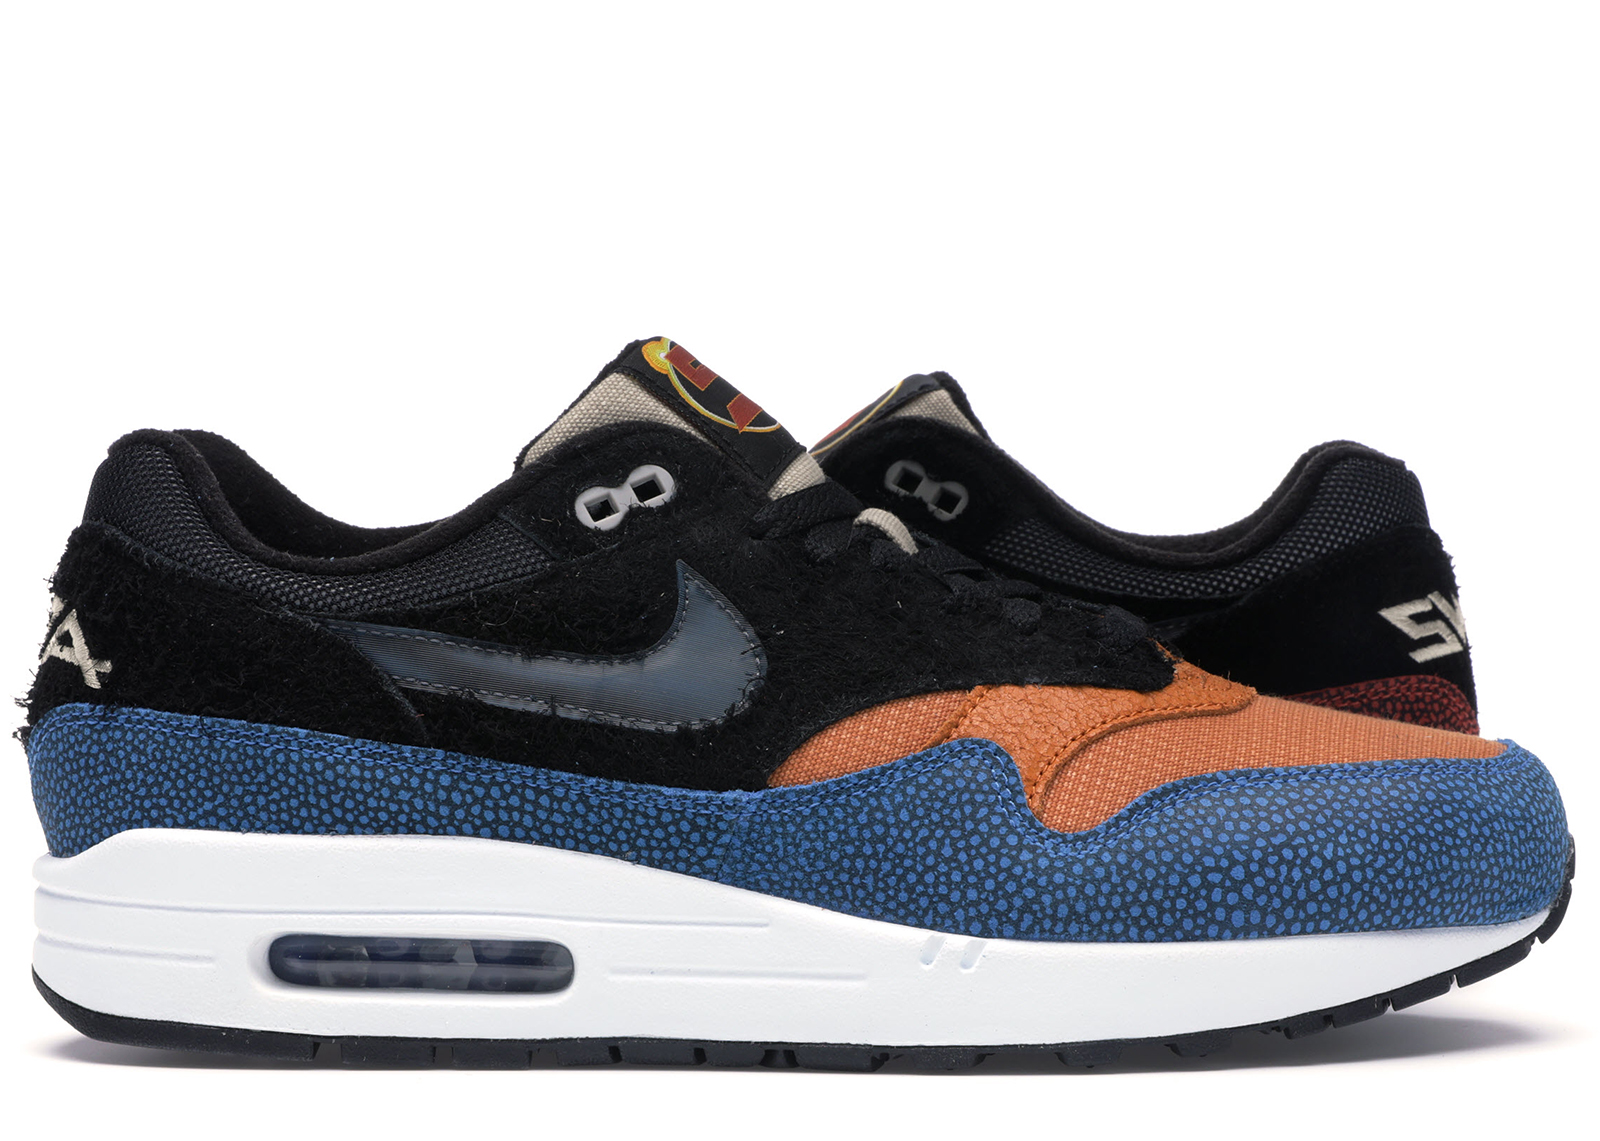 Details about Nike Air Max 1 SWIPA De'Aaron Fox Black Cinder Orange Photo Blue Red CJ9746 001